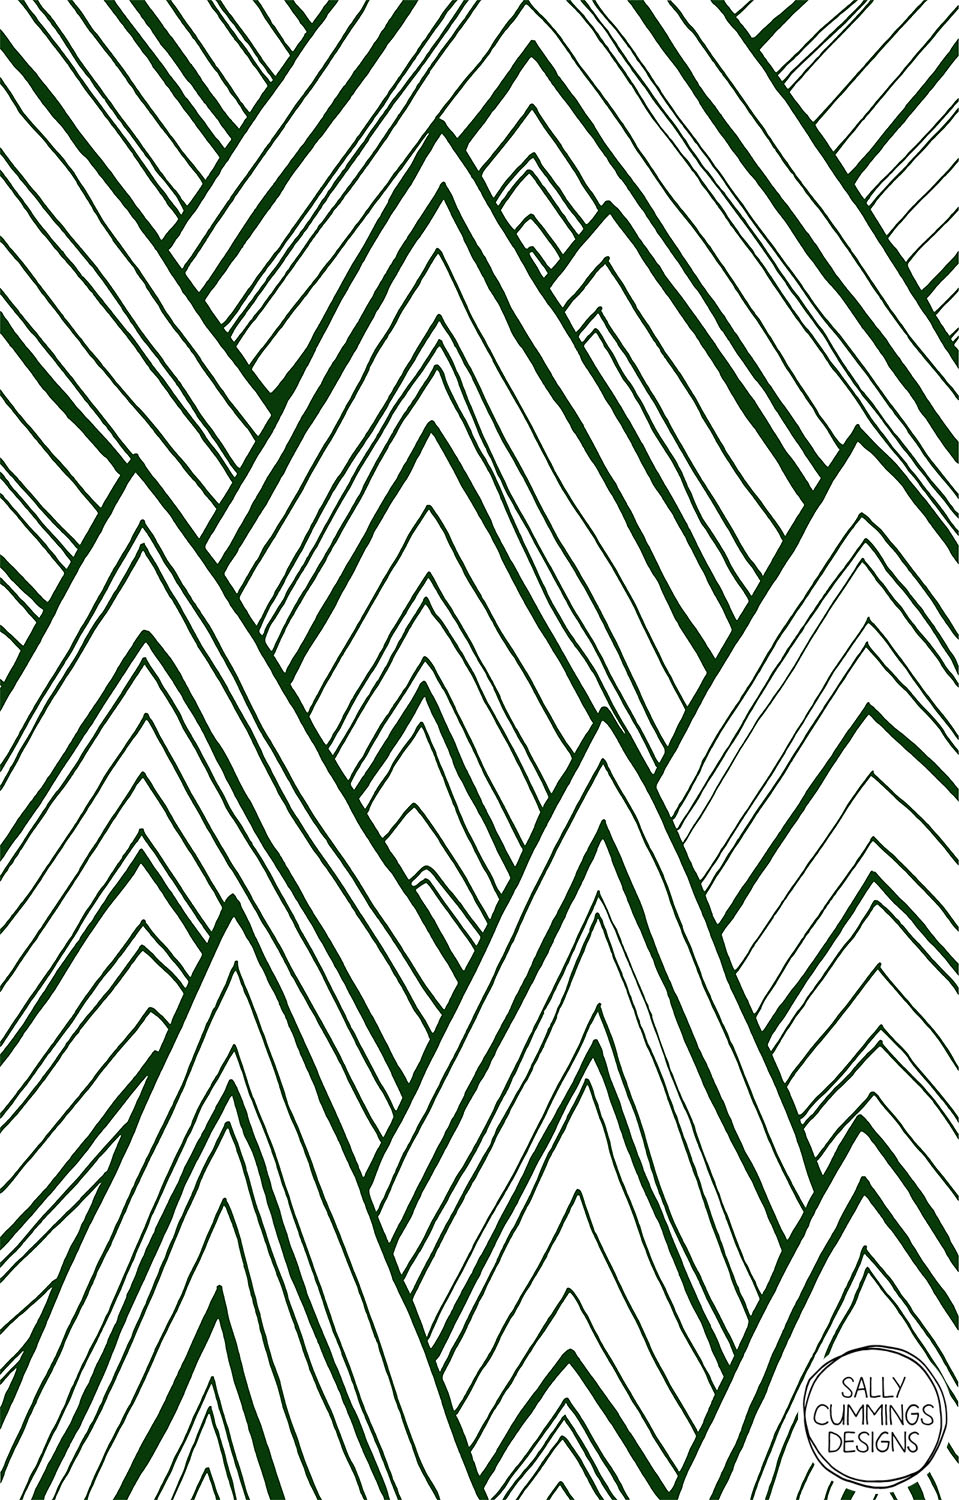 Sally Cummings Designs - Stripe Mountains (Dark Green)